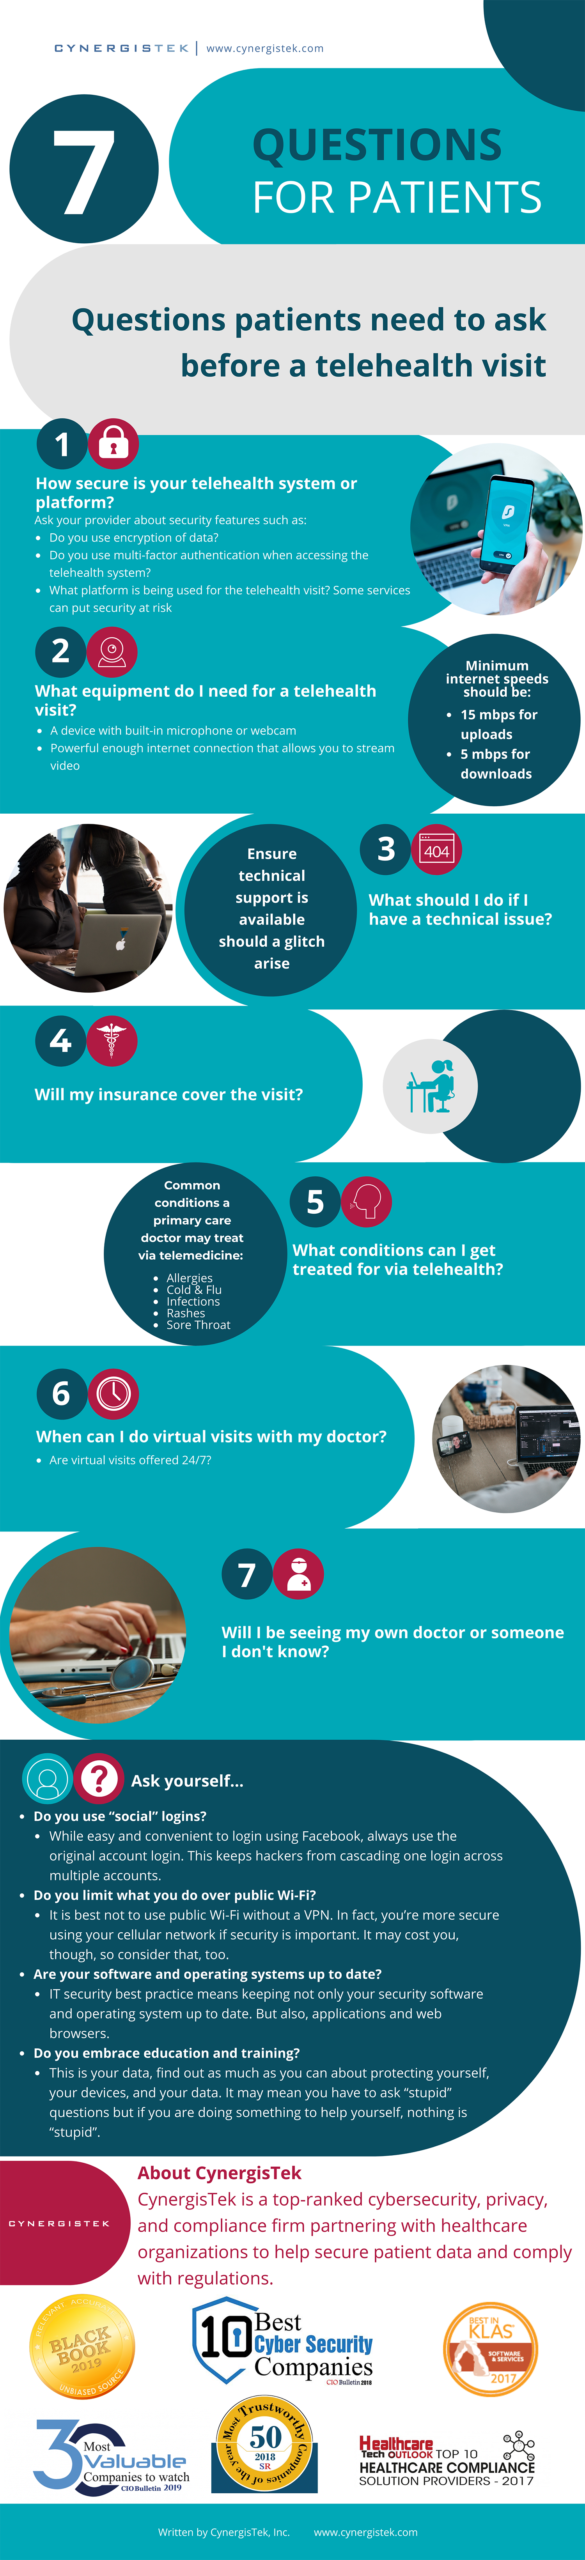 7 Questions Patients Need to Ask Before a Telehealth Visit